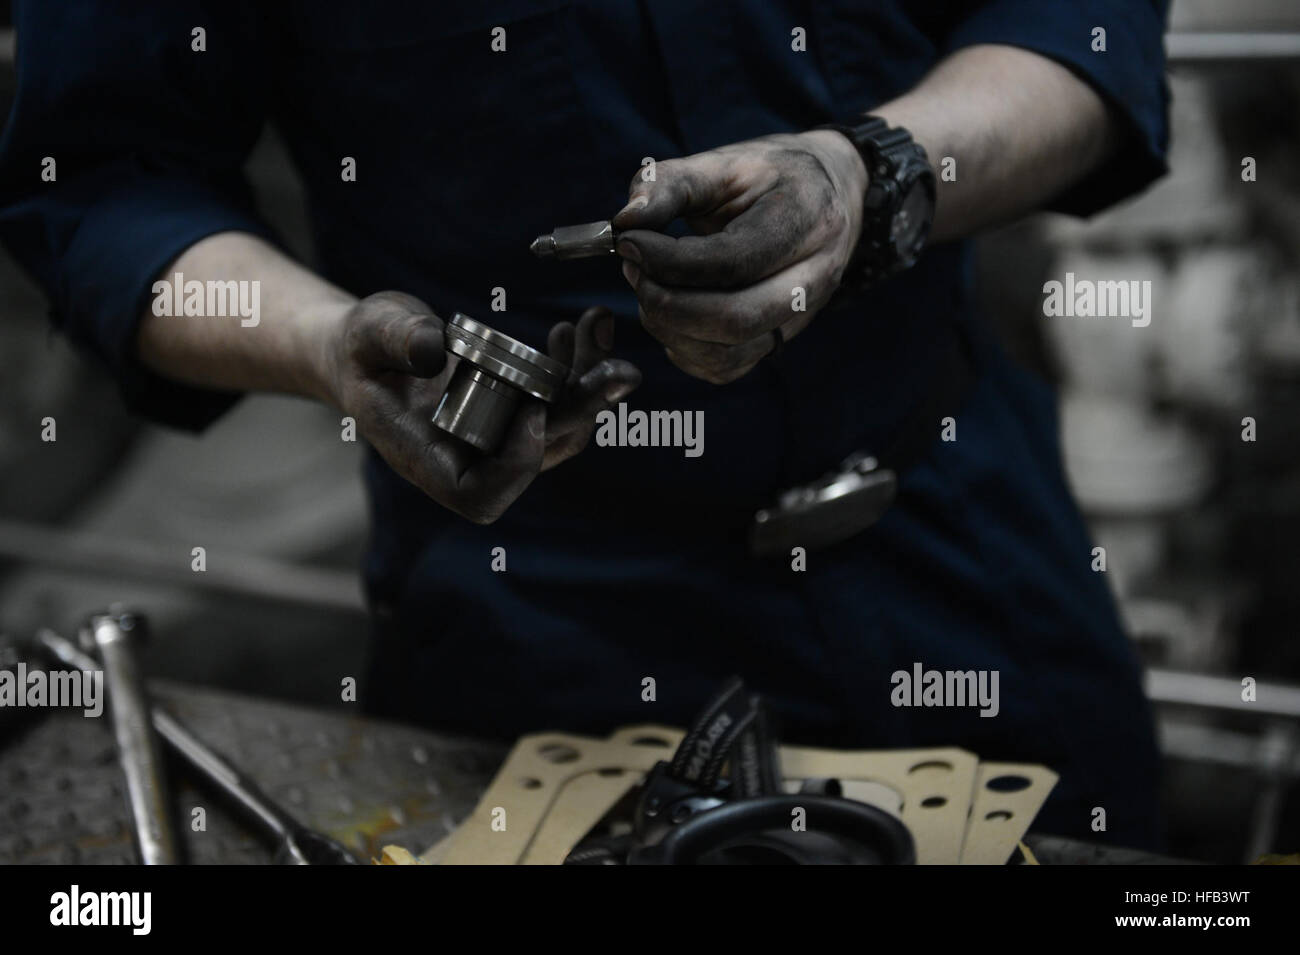 u s navy engineman 3rd class amell trevino holds parts after stock